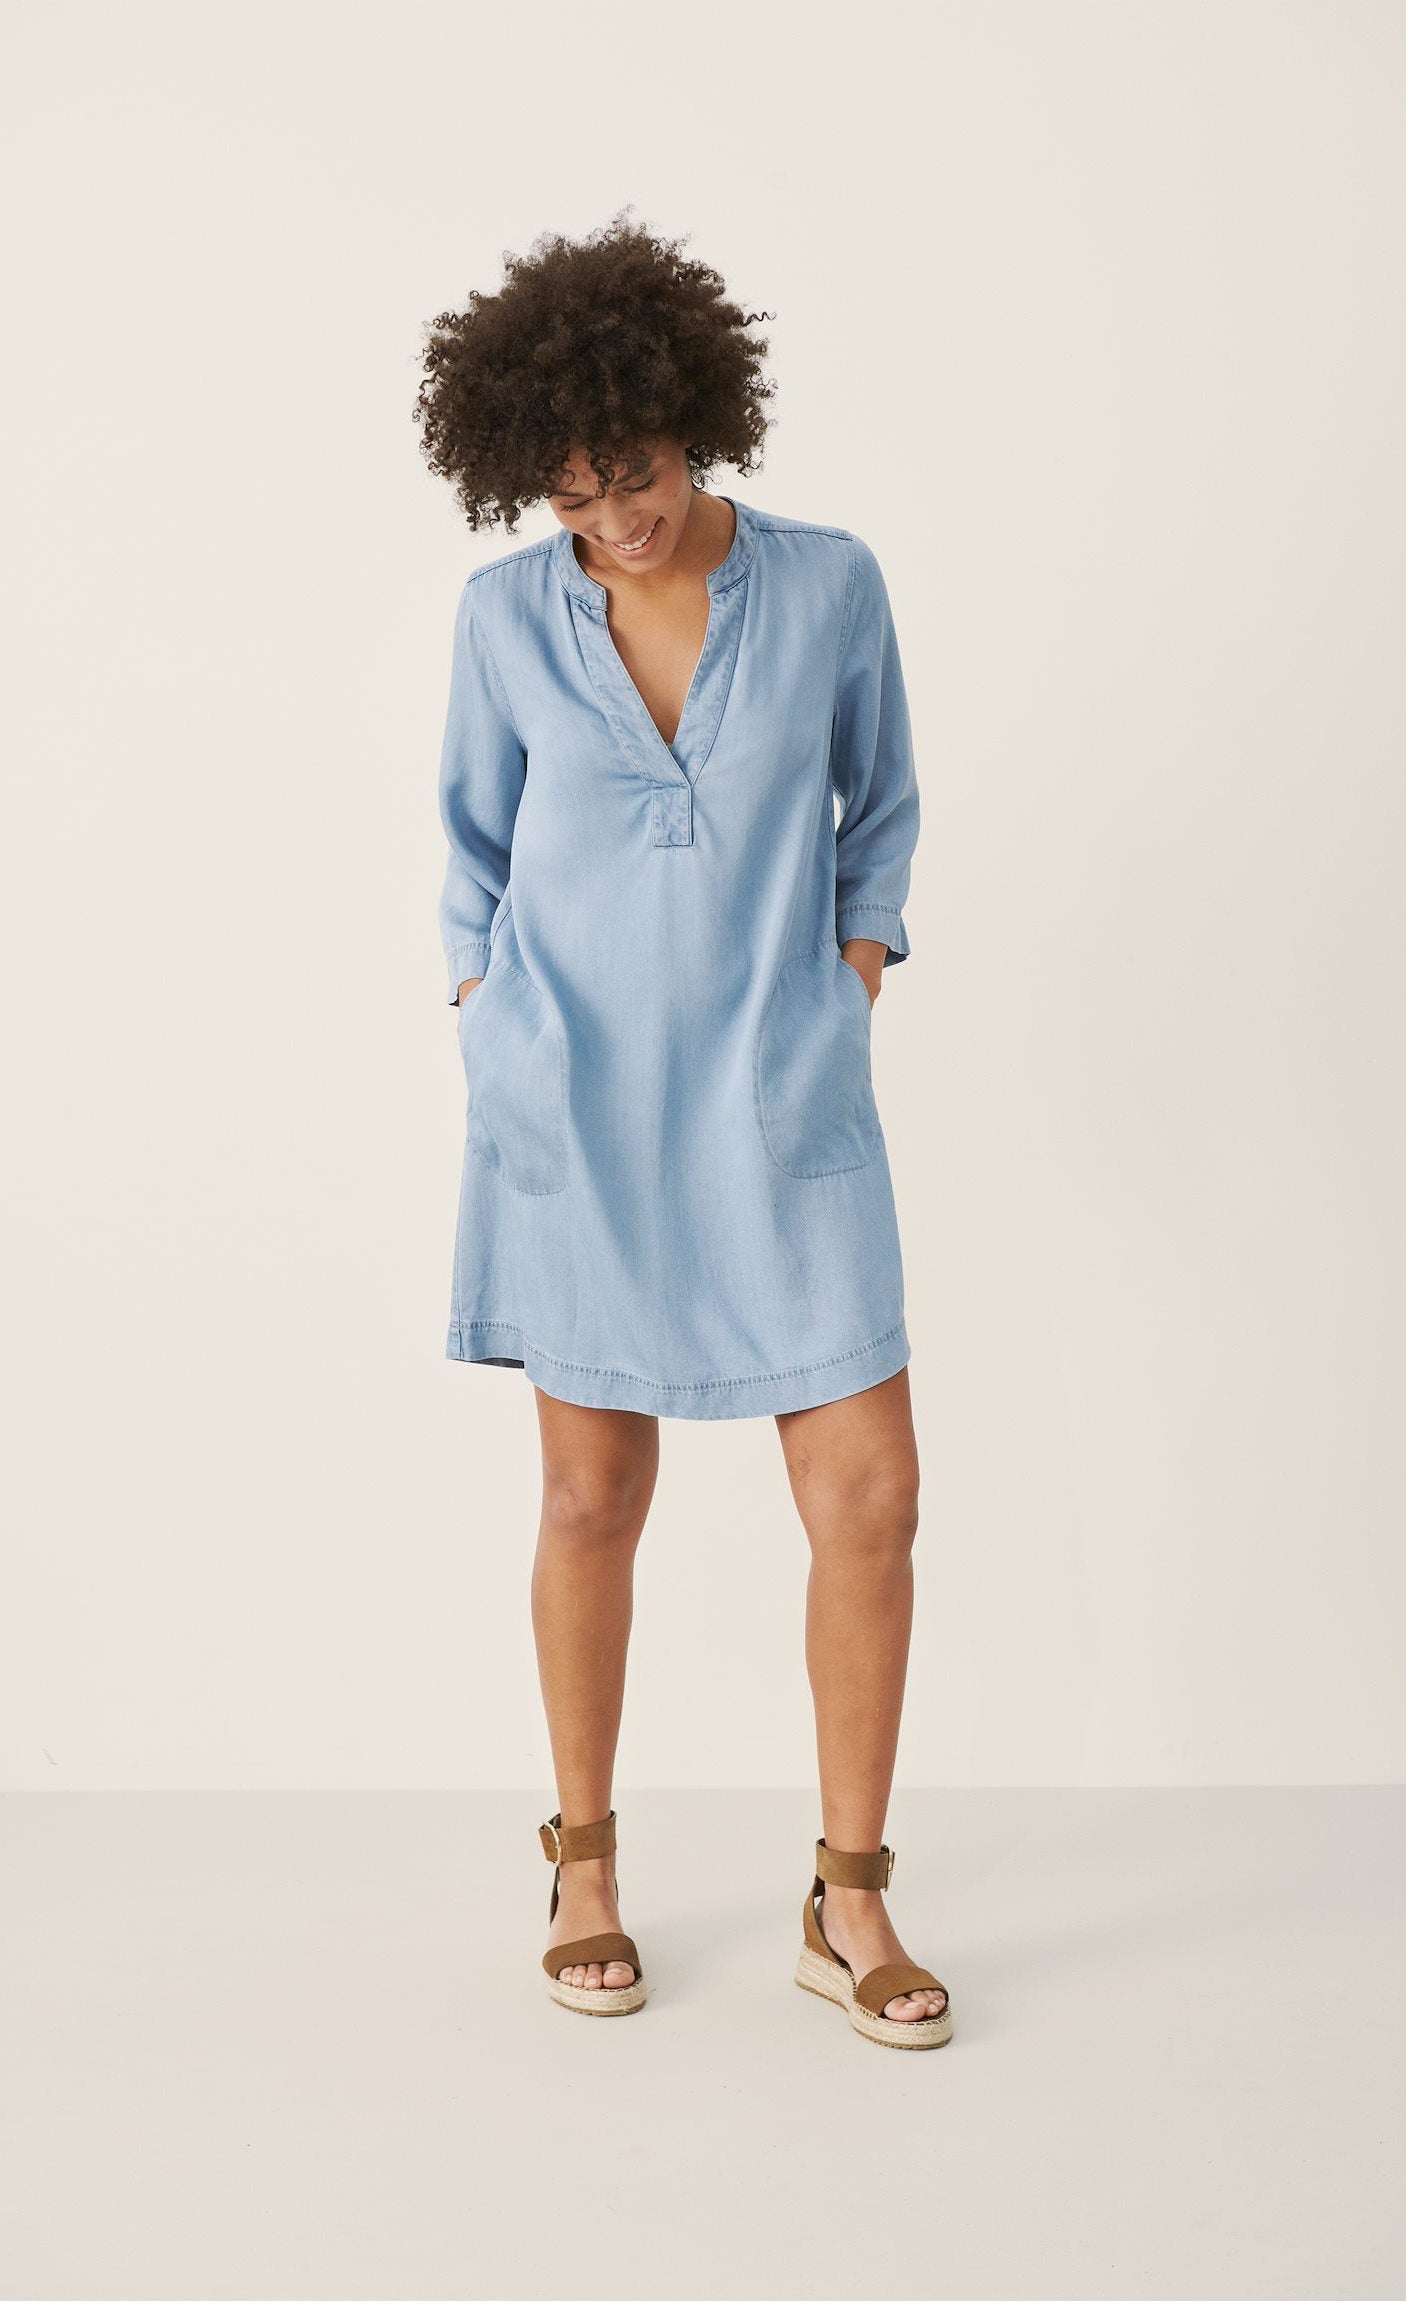 Front full body view of a woman wearing the part two ingeline dress. This dress is a light blue denim. It ends at the knees, has 3/4 length sleeves, and a v-neck.